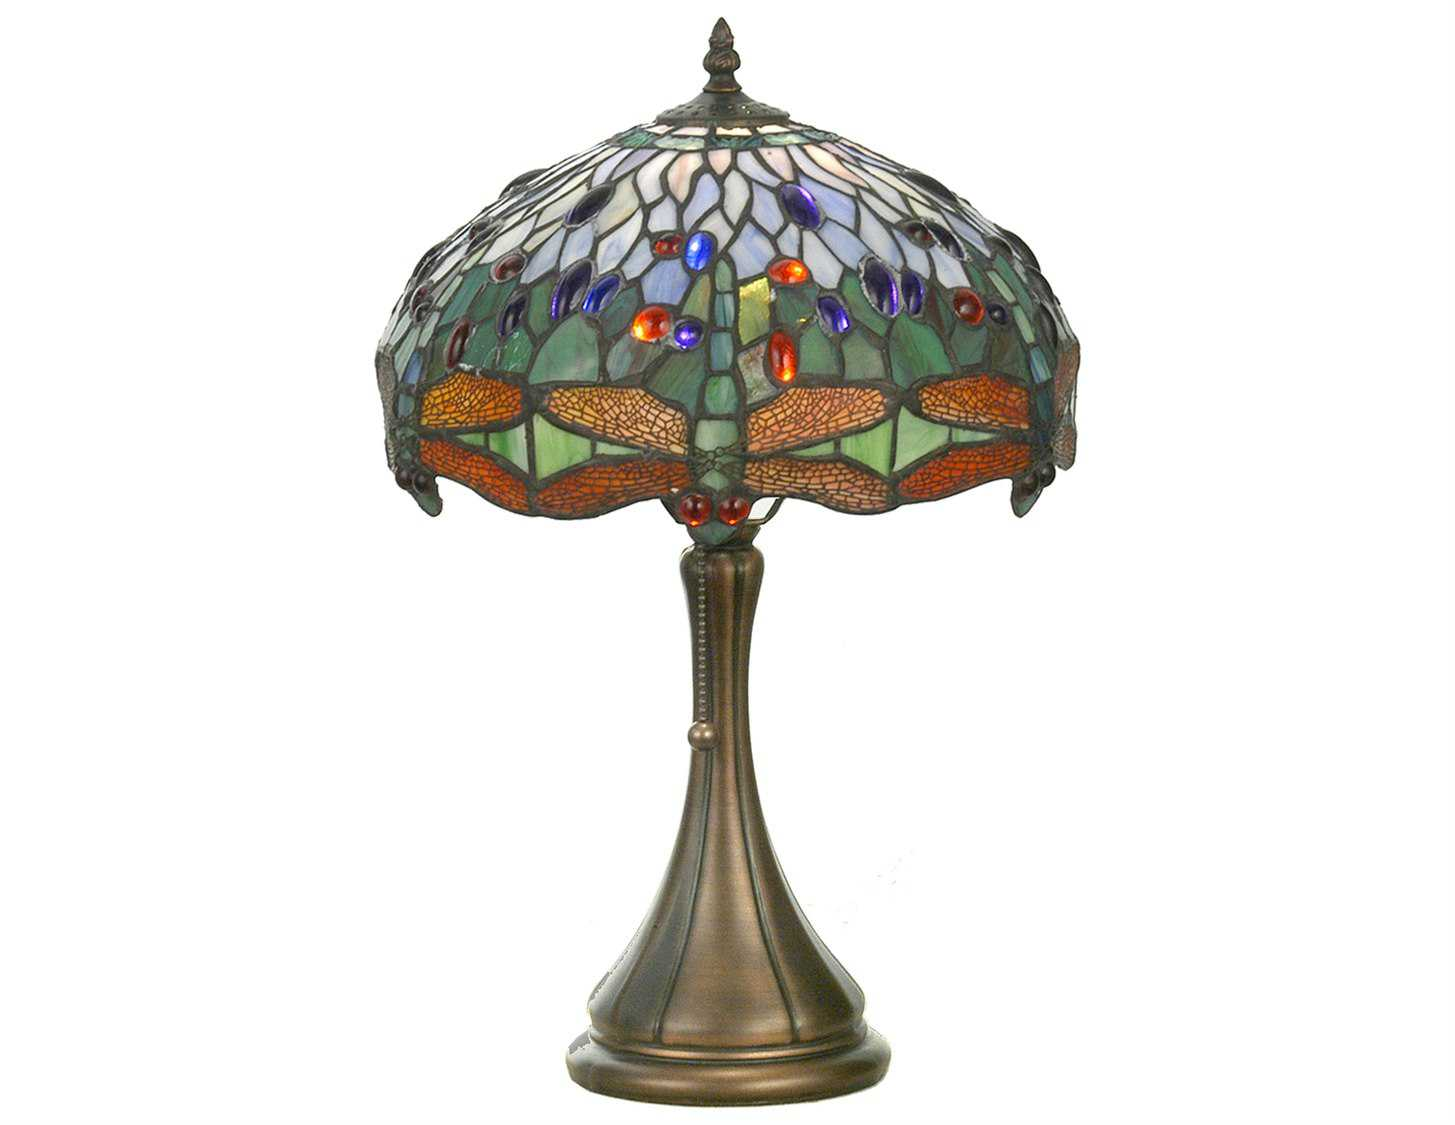 meyda tiffany hanginghead dragonfly multi color accent table lamp lamps touch zoom furniture for tiny spaces blue side vintage marble coffee entryway console rectangle glass white